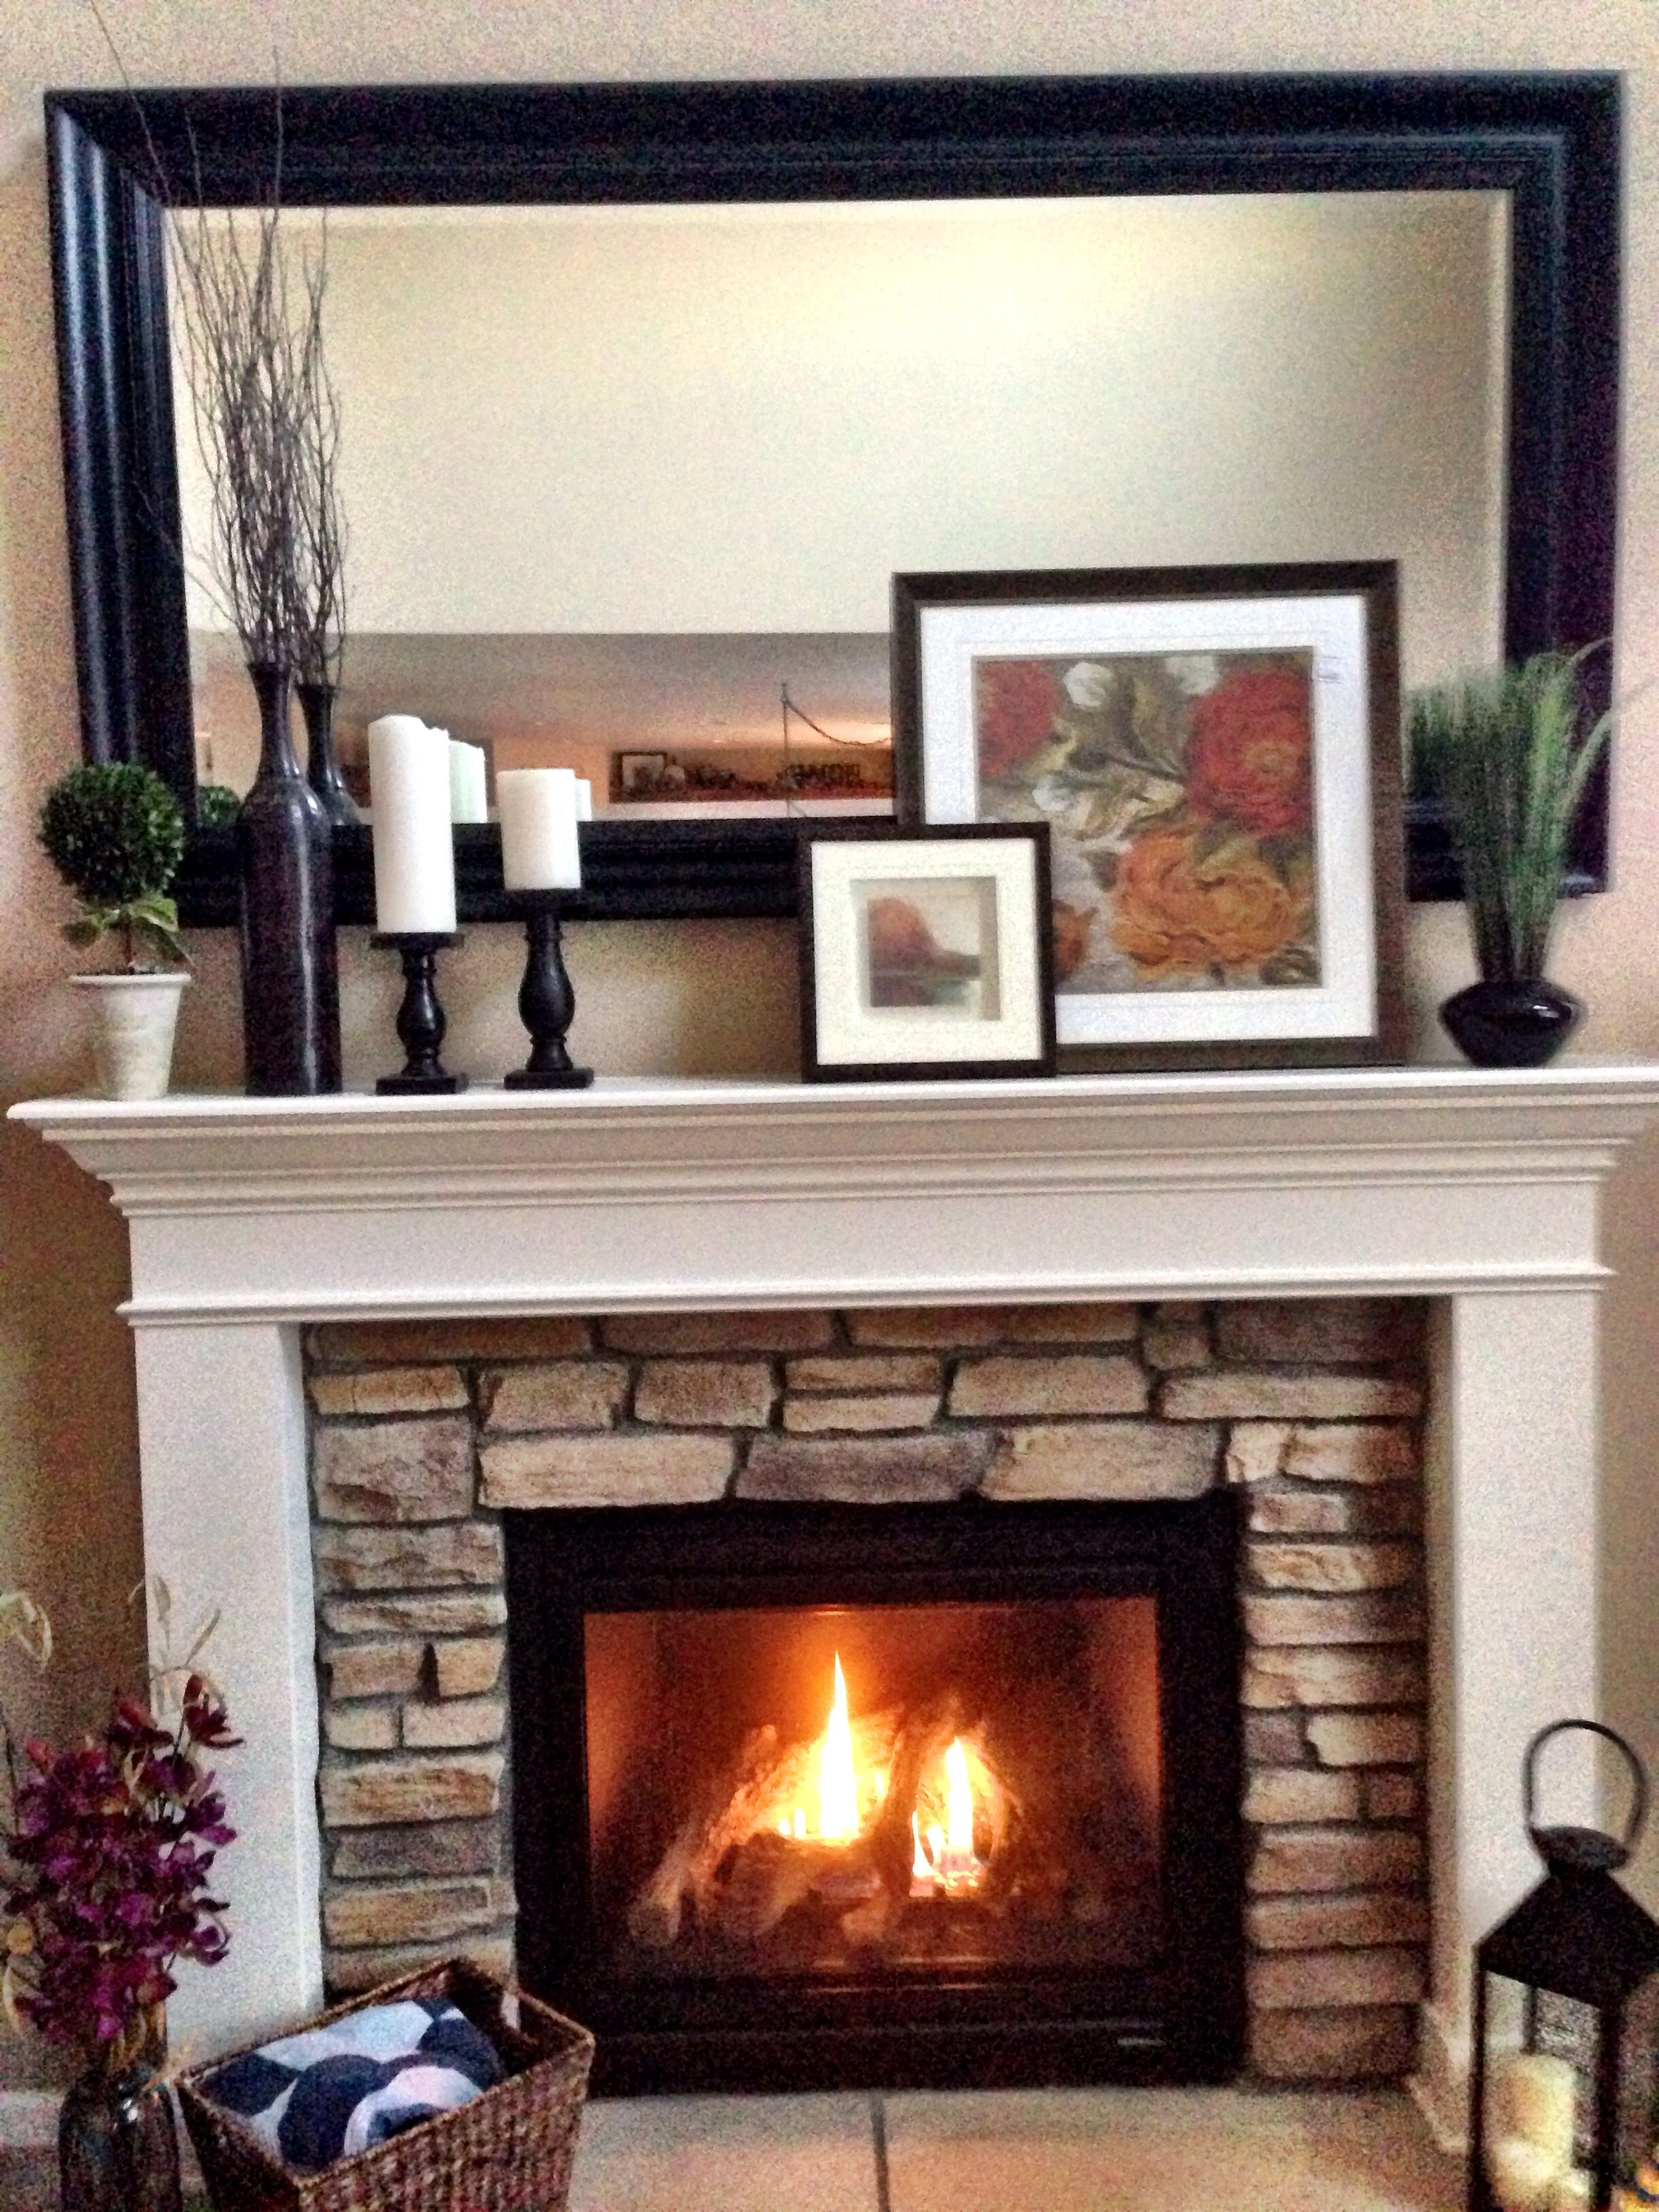 Mantel Decorating/Layering c2Design Decorating Fireplace Mantels Fireplace Mantle Decorations Fireplace Mirror & Mantel Decorating/Layering c2Design | For the Home | Pinterest ...